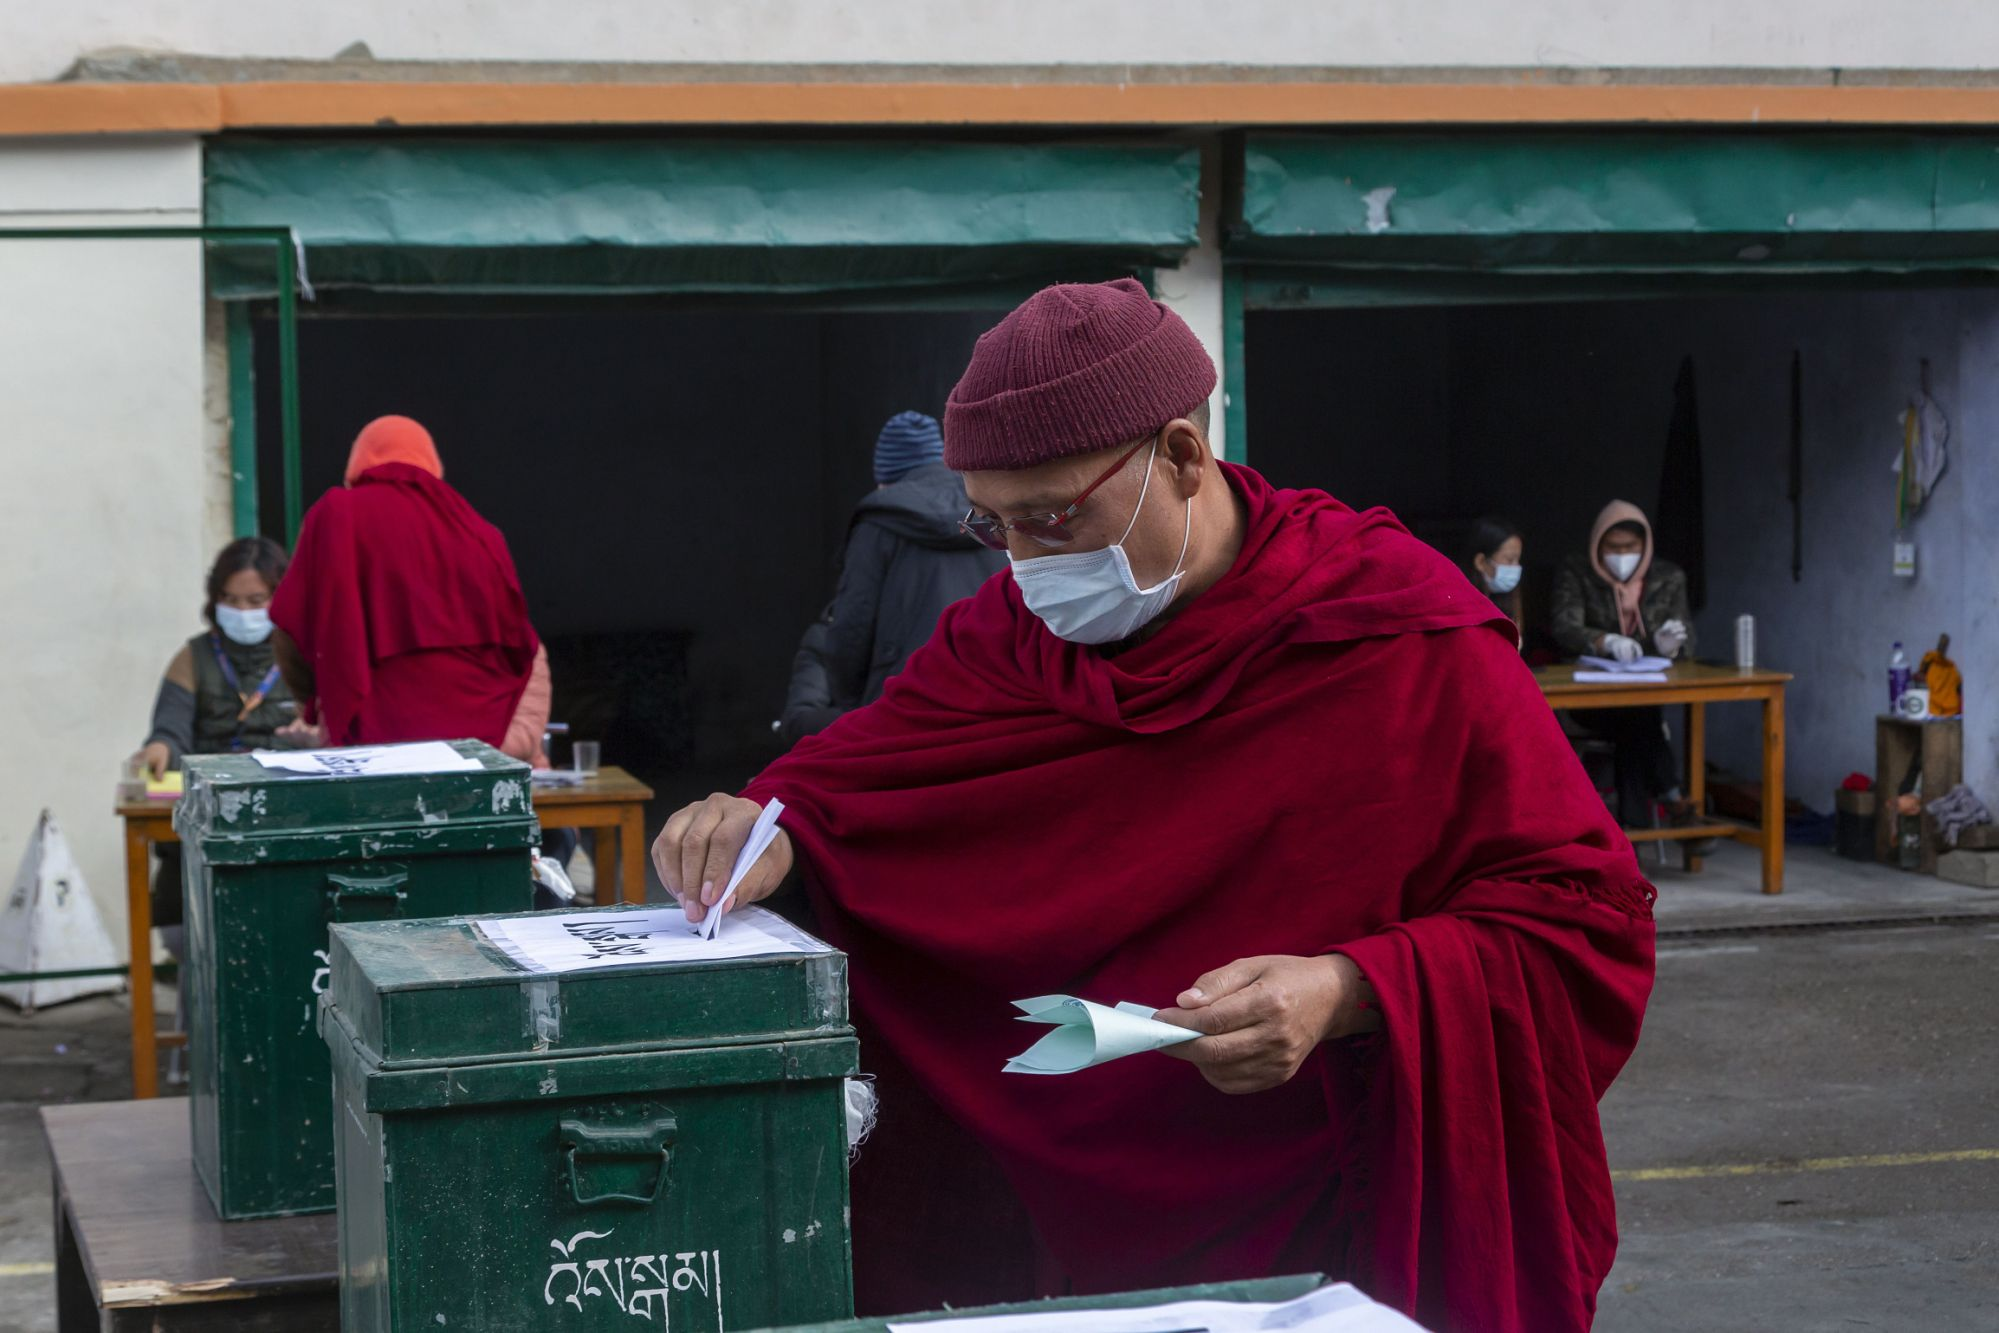 Tibetans in exile in India vote for their political leader